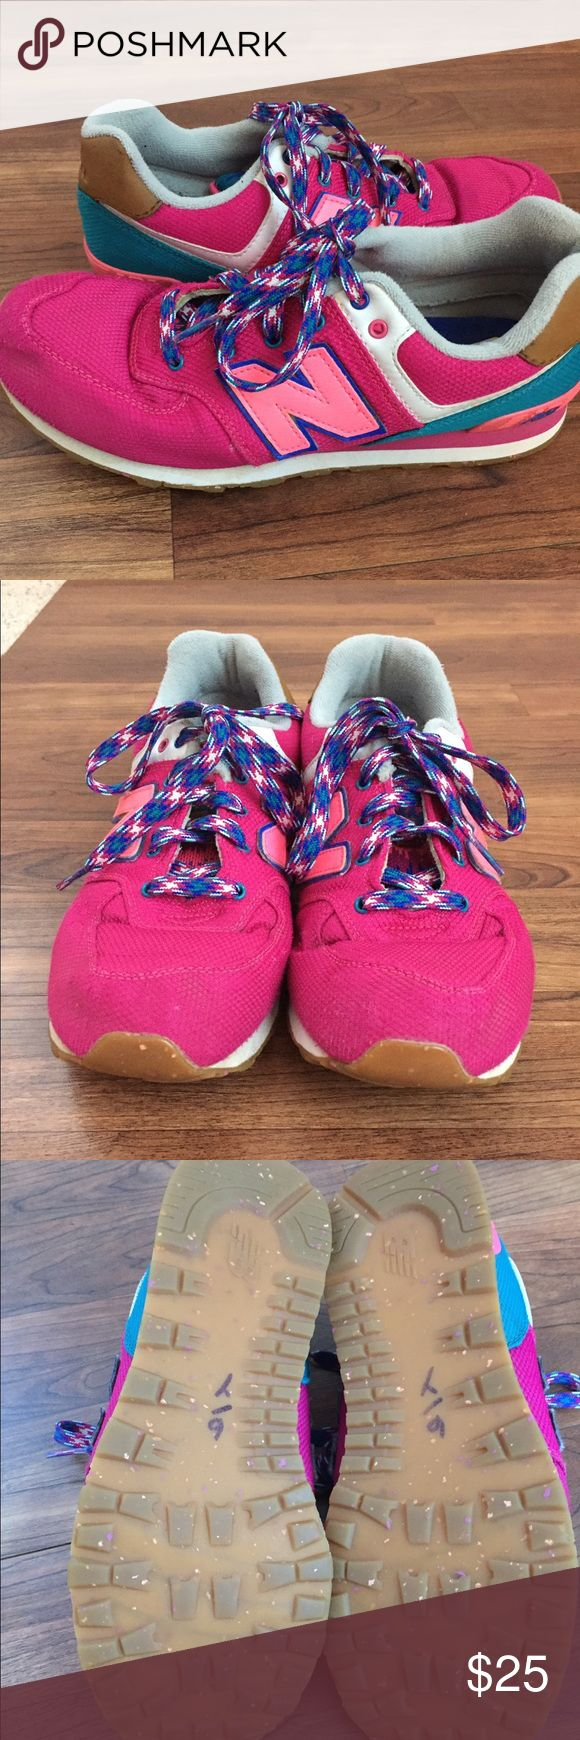 New Balance Retro Sneakers New Balance Retro Sneakers! Comfortable fit! Offers welcomed New Balance Shoes Athletic Shoes